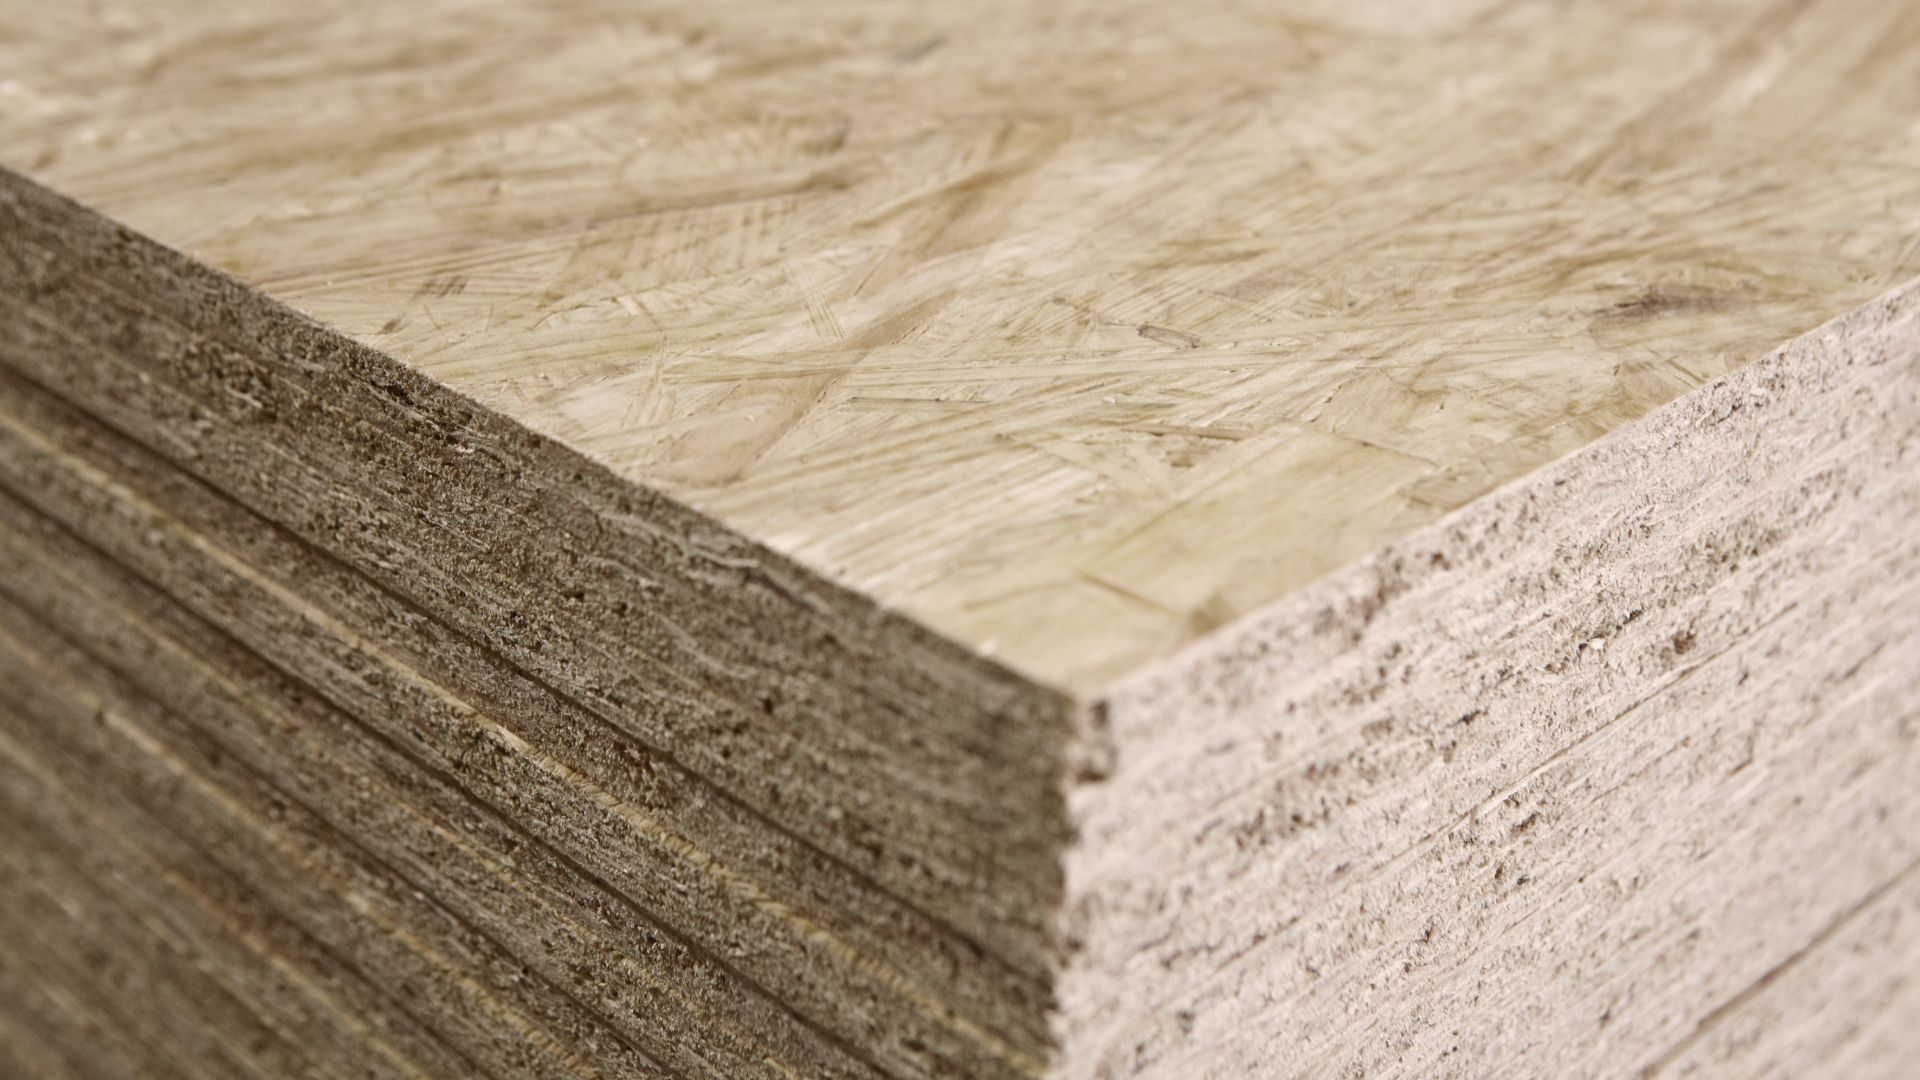 75% of the high quality OSB boards will be exported